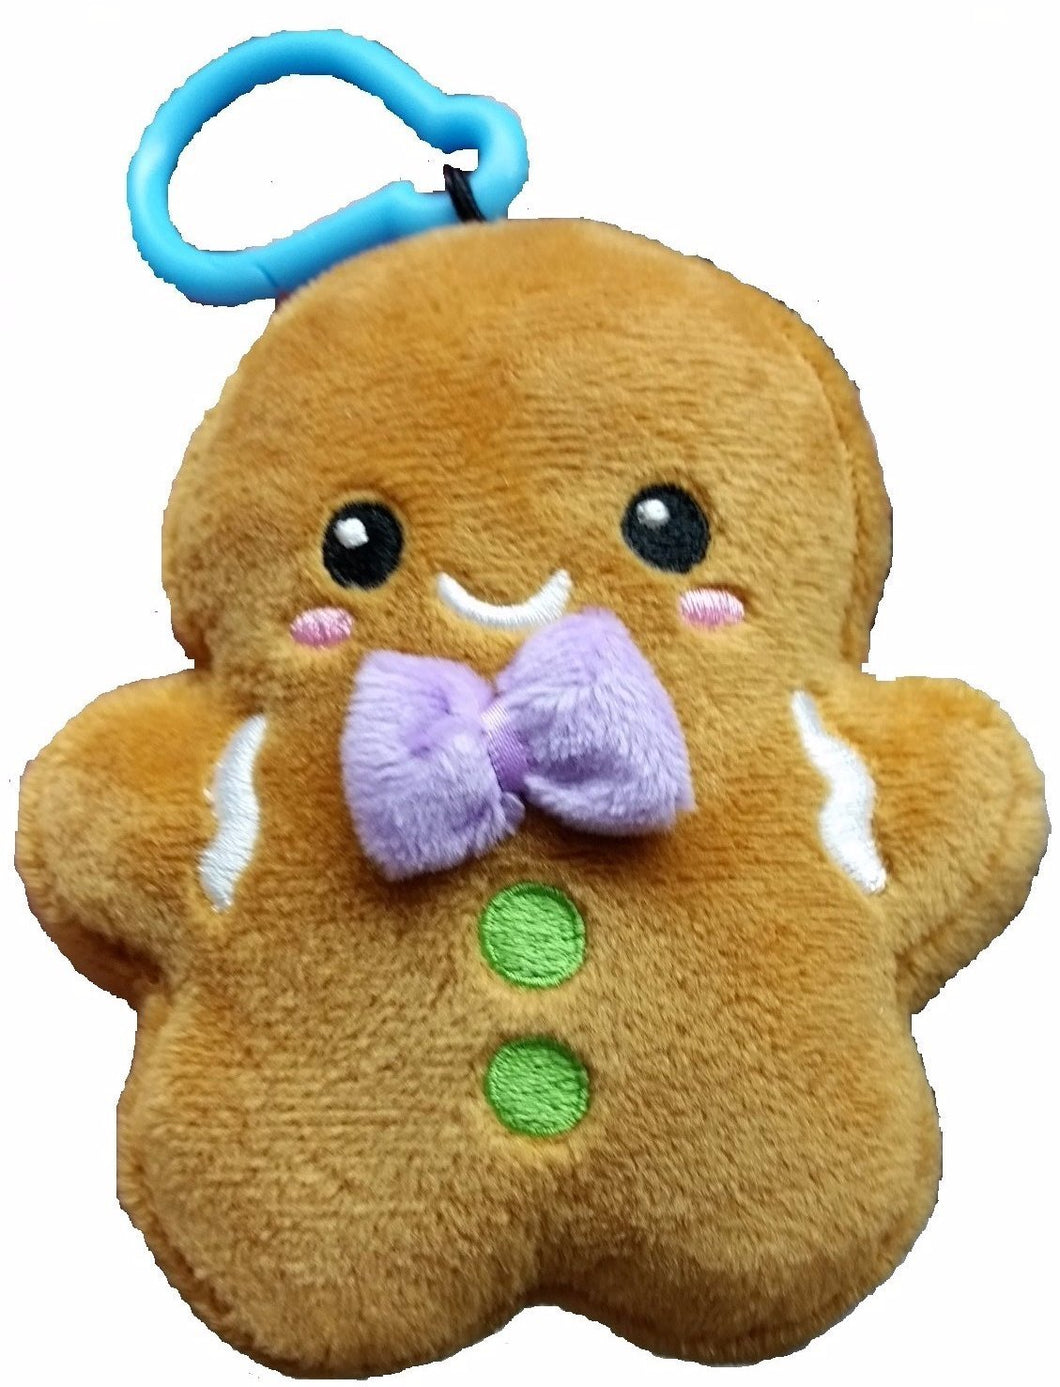 Micro Squishable Gingerbread Man 3